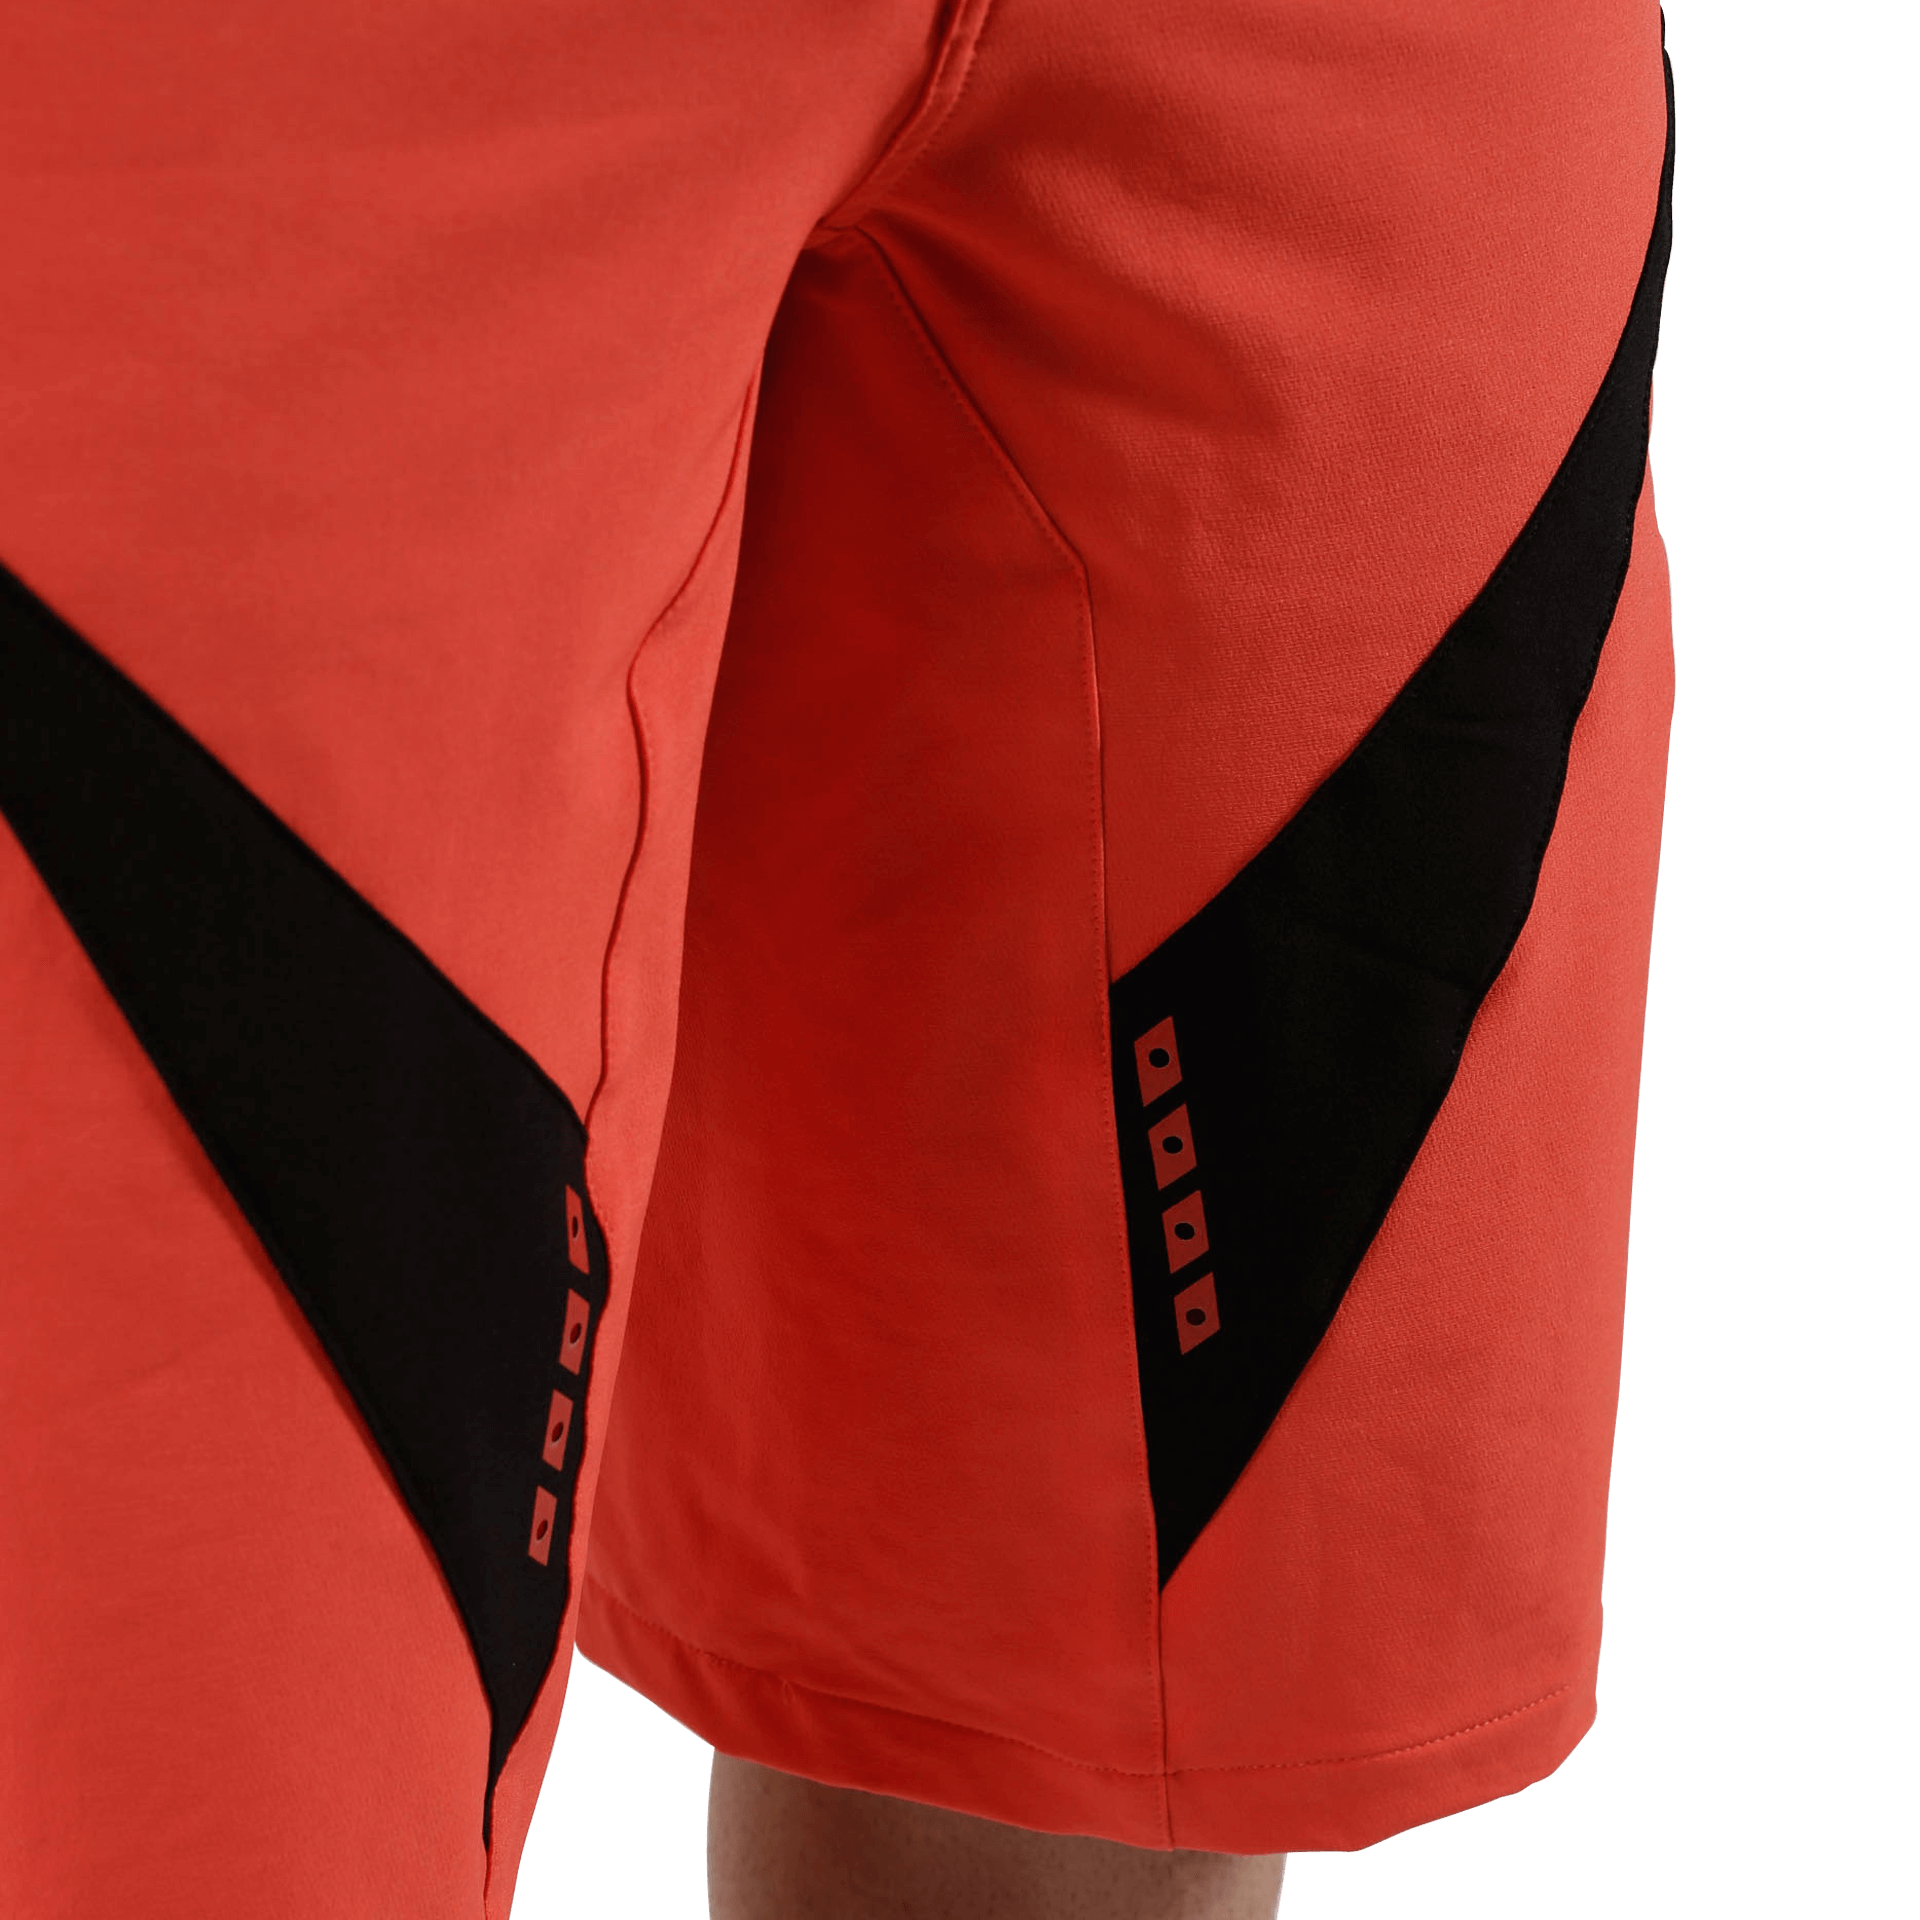 RCD TRAIL SHORT, HOT RED - hot red - XXL - RCD TRAIL SHORT, HOT RED - hot red - XXL